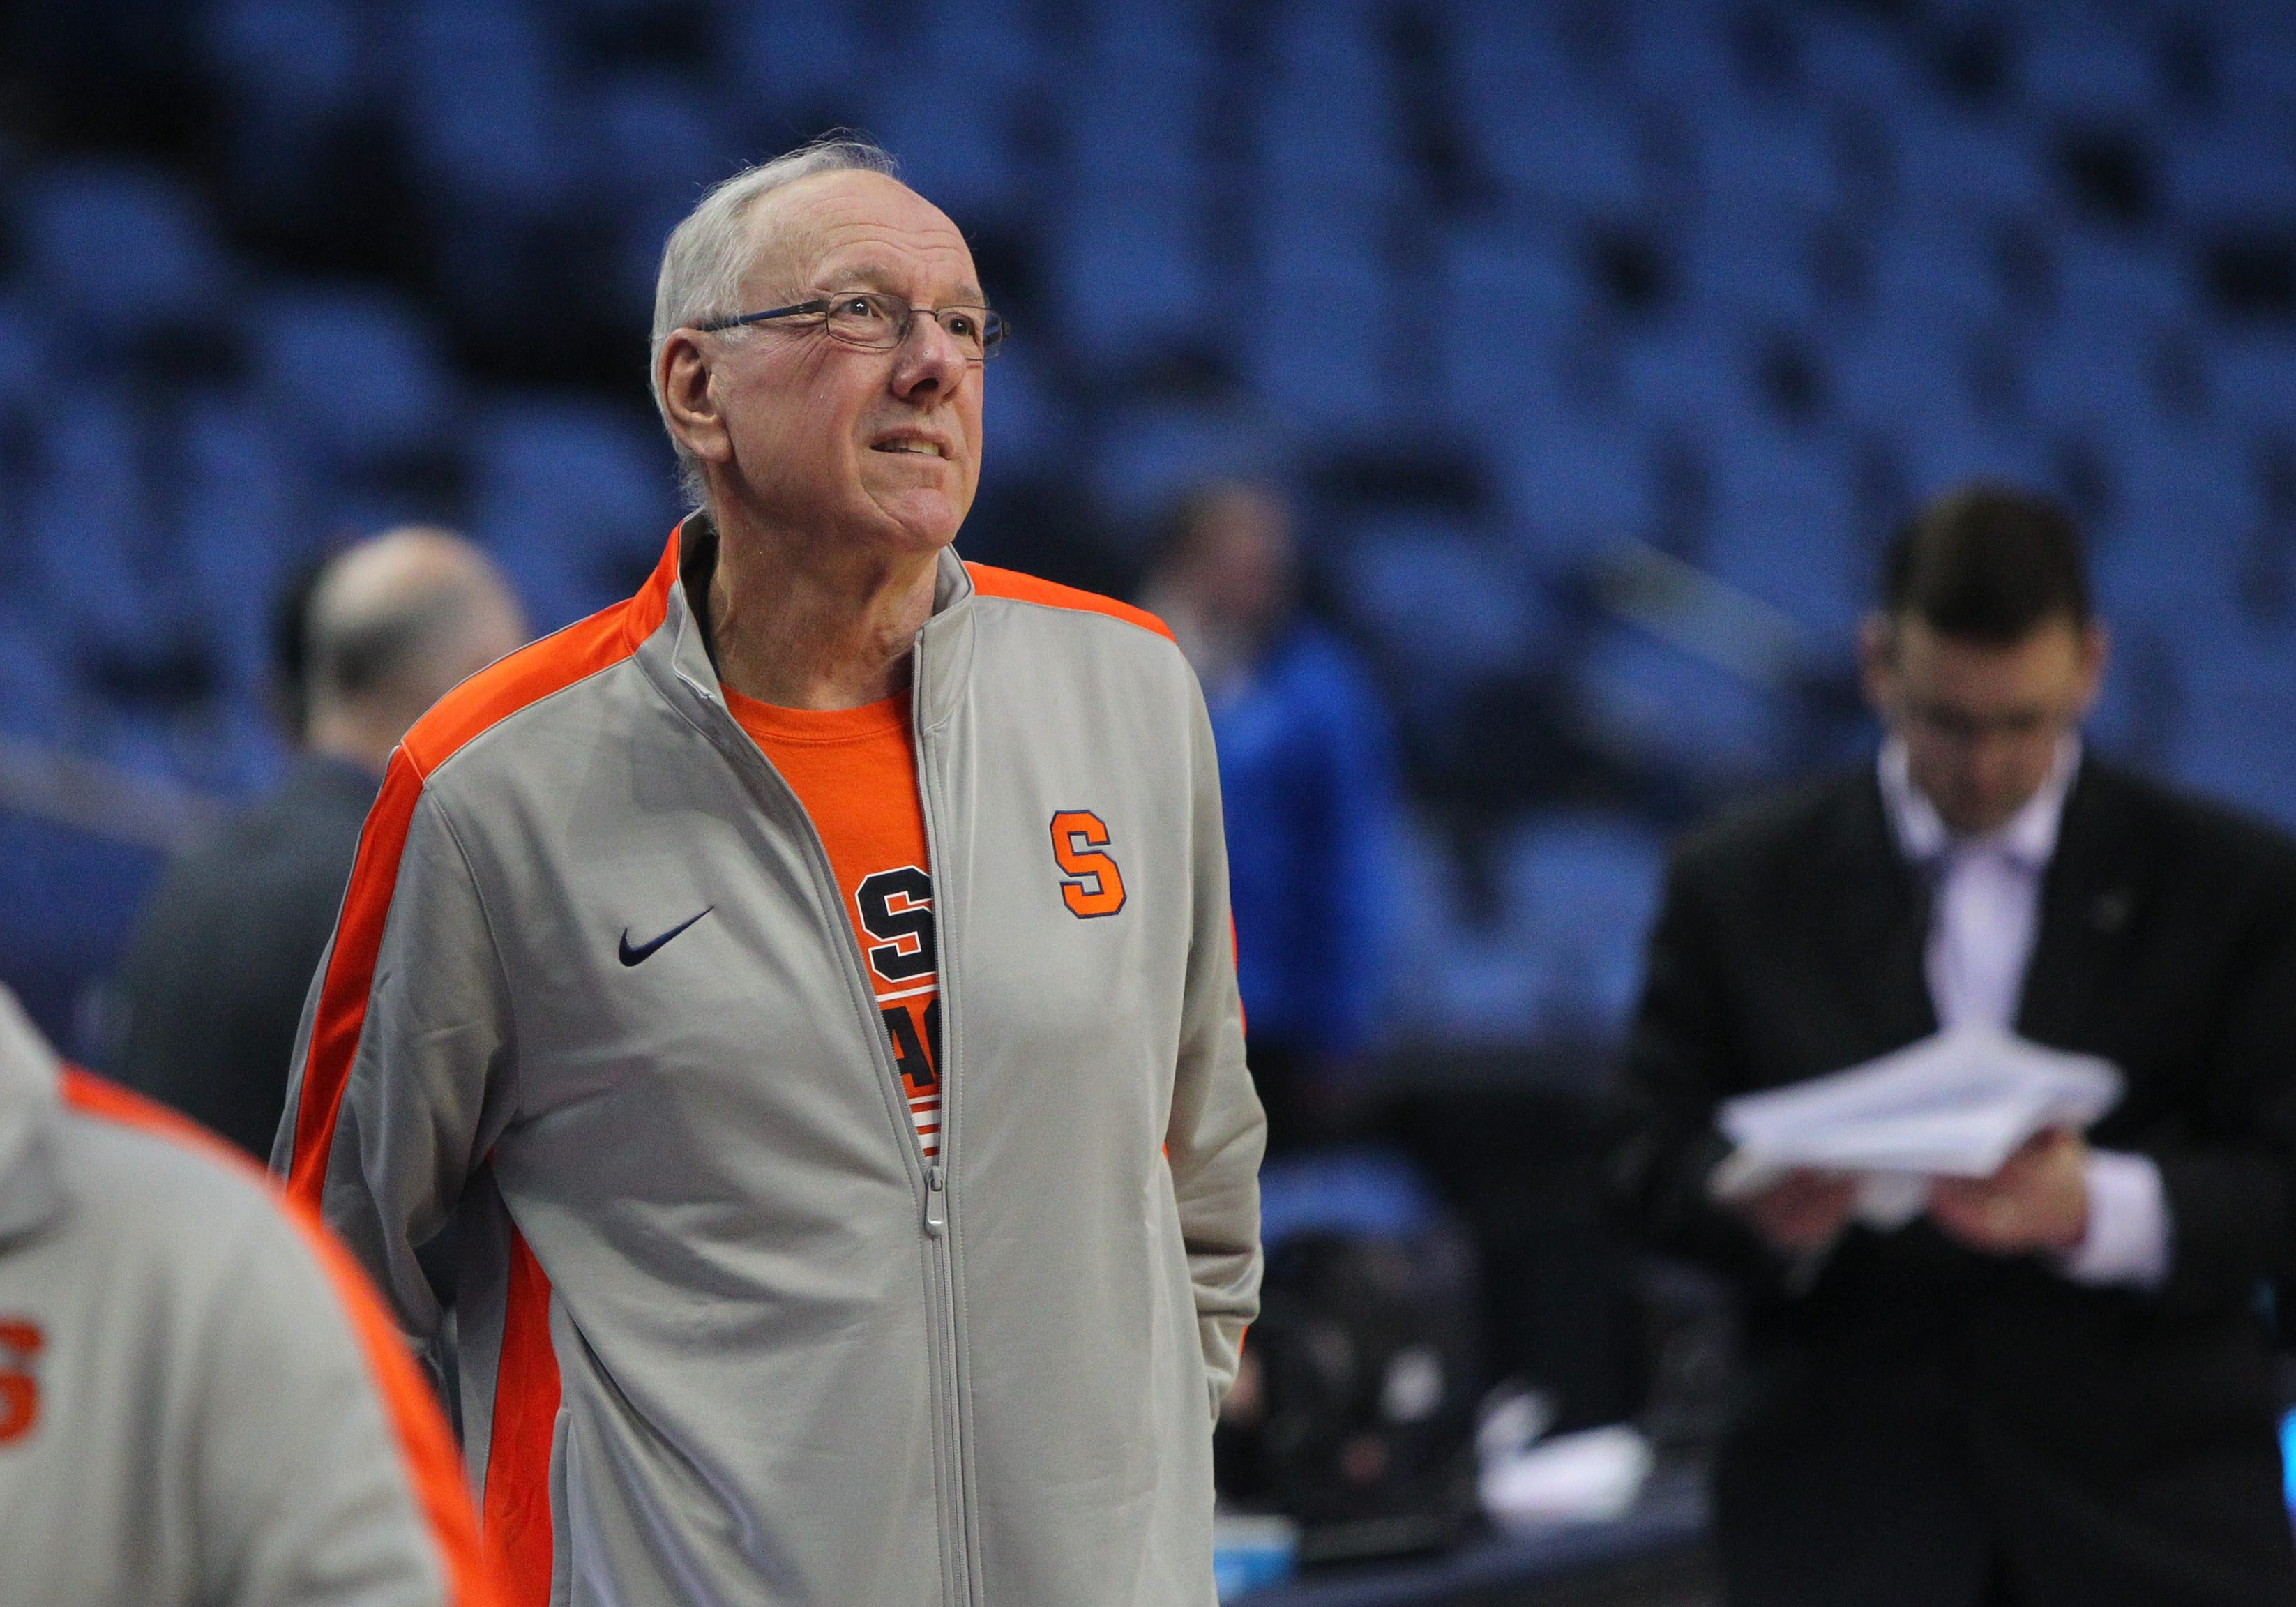 Syracuse coach Jim Boeheim during press conference before practice at the First Niagara Center in Buffalo Wednesday, March 19, 2014.    (Mark Mulville/Buffalo News)